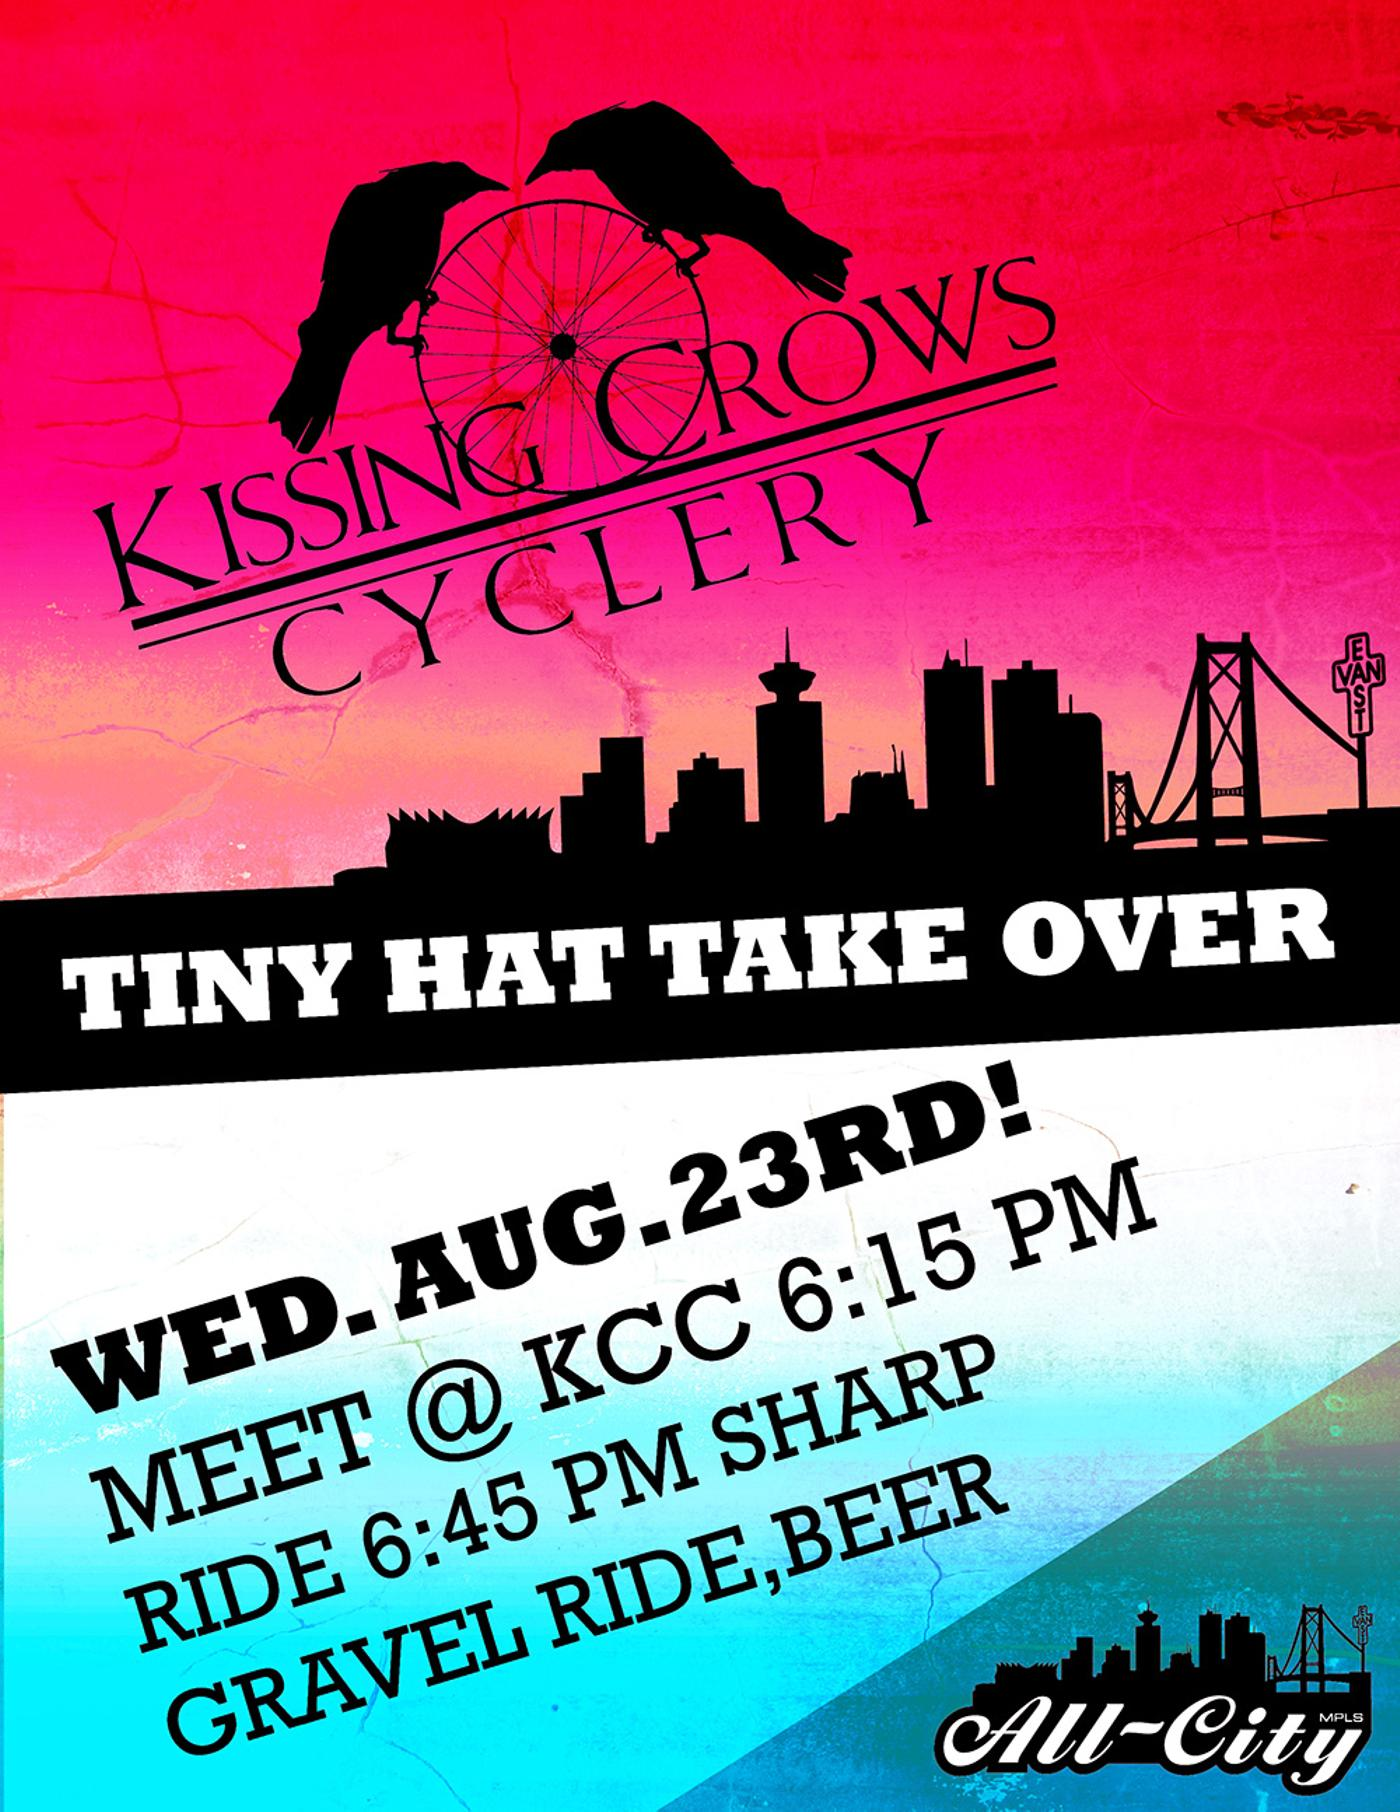 All City Ride + Party August 23 at Kissing Crows Cyclery in Vancouver!